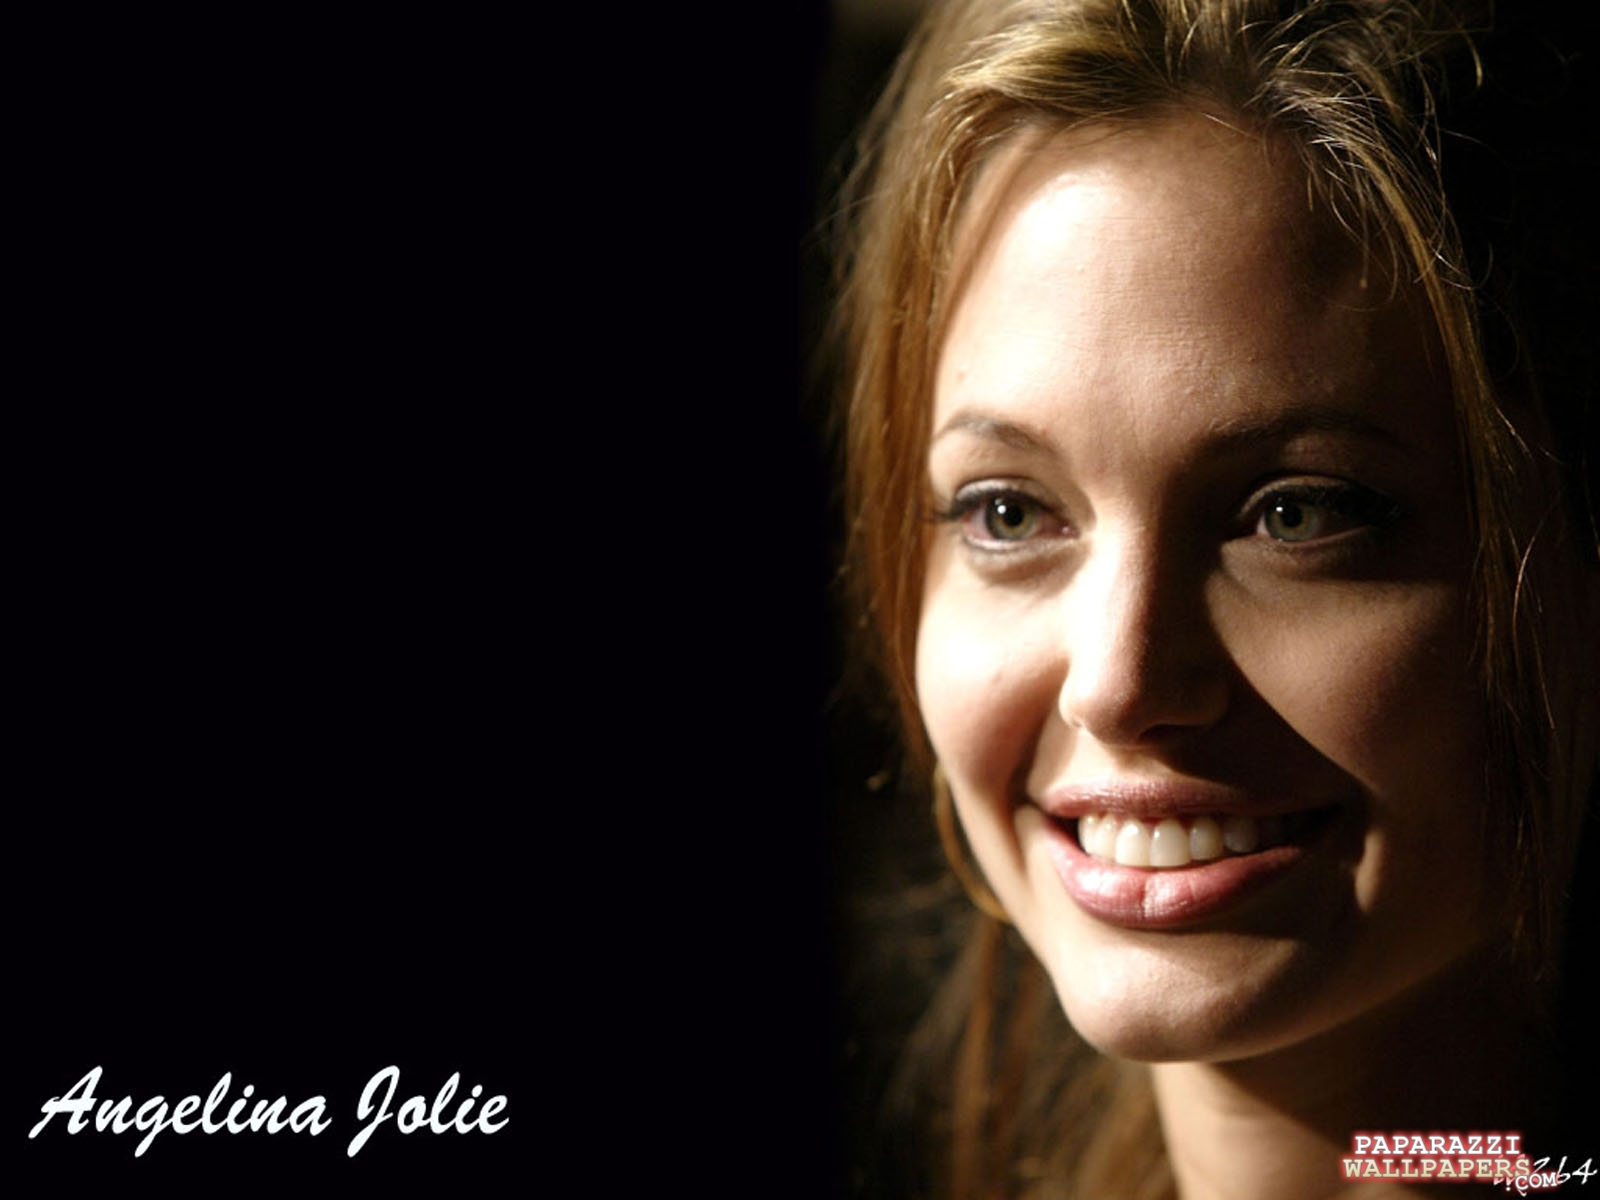 angelina jolie wallpapers 009